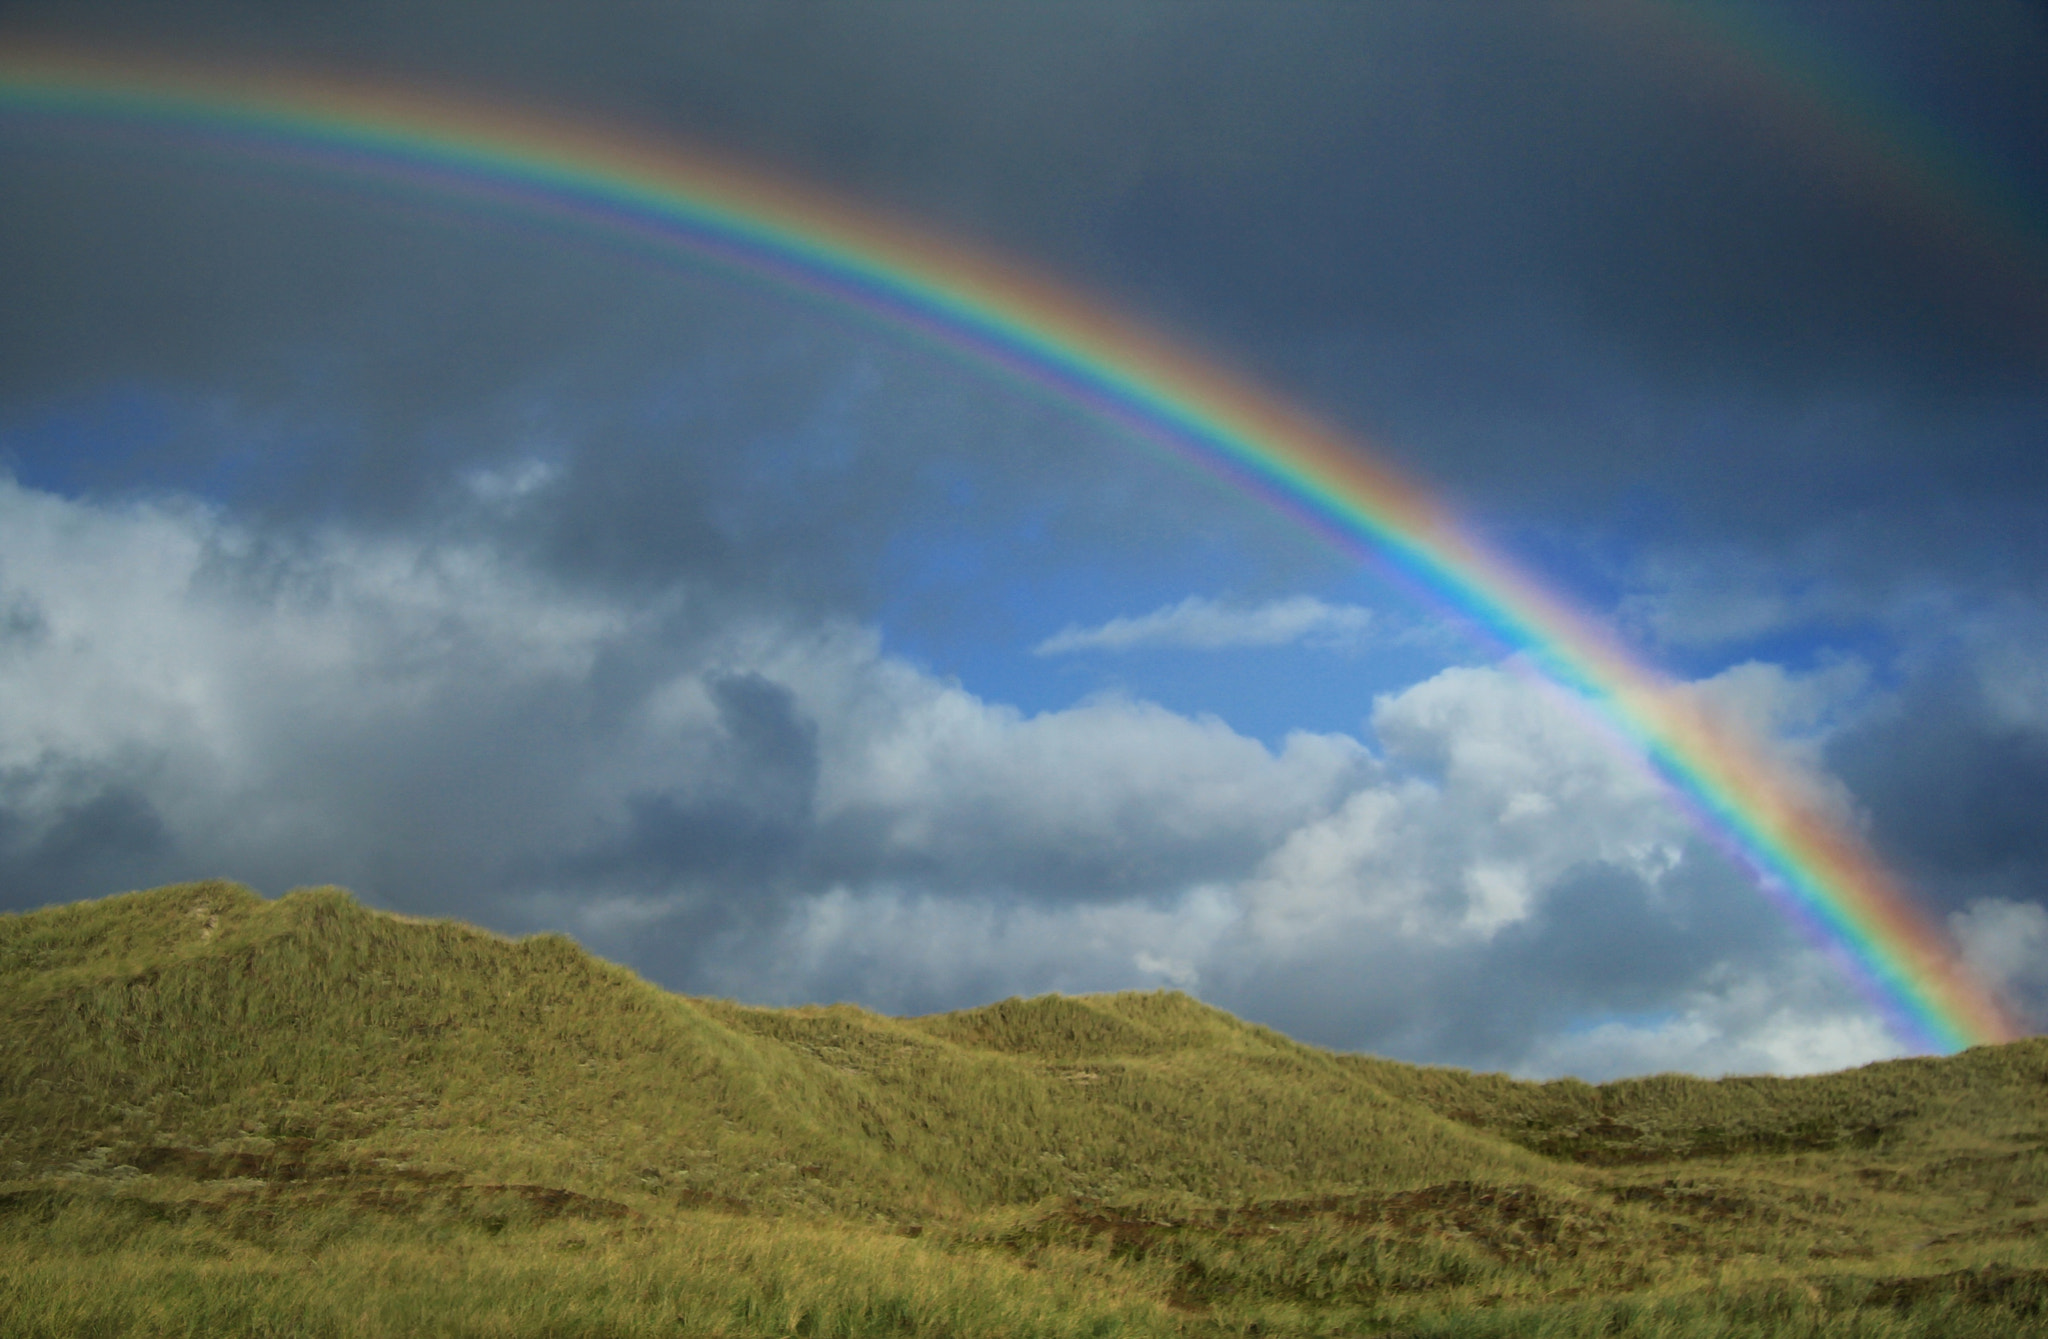 Photograph Rainbow by Joost Lagerweij on 500px